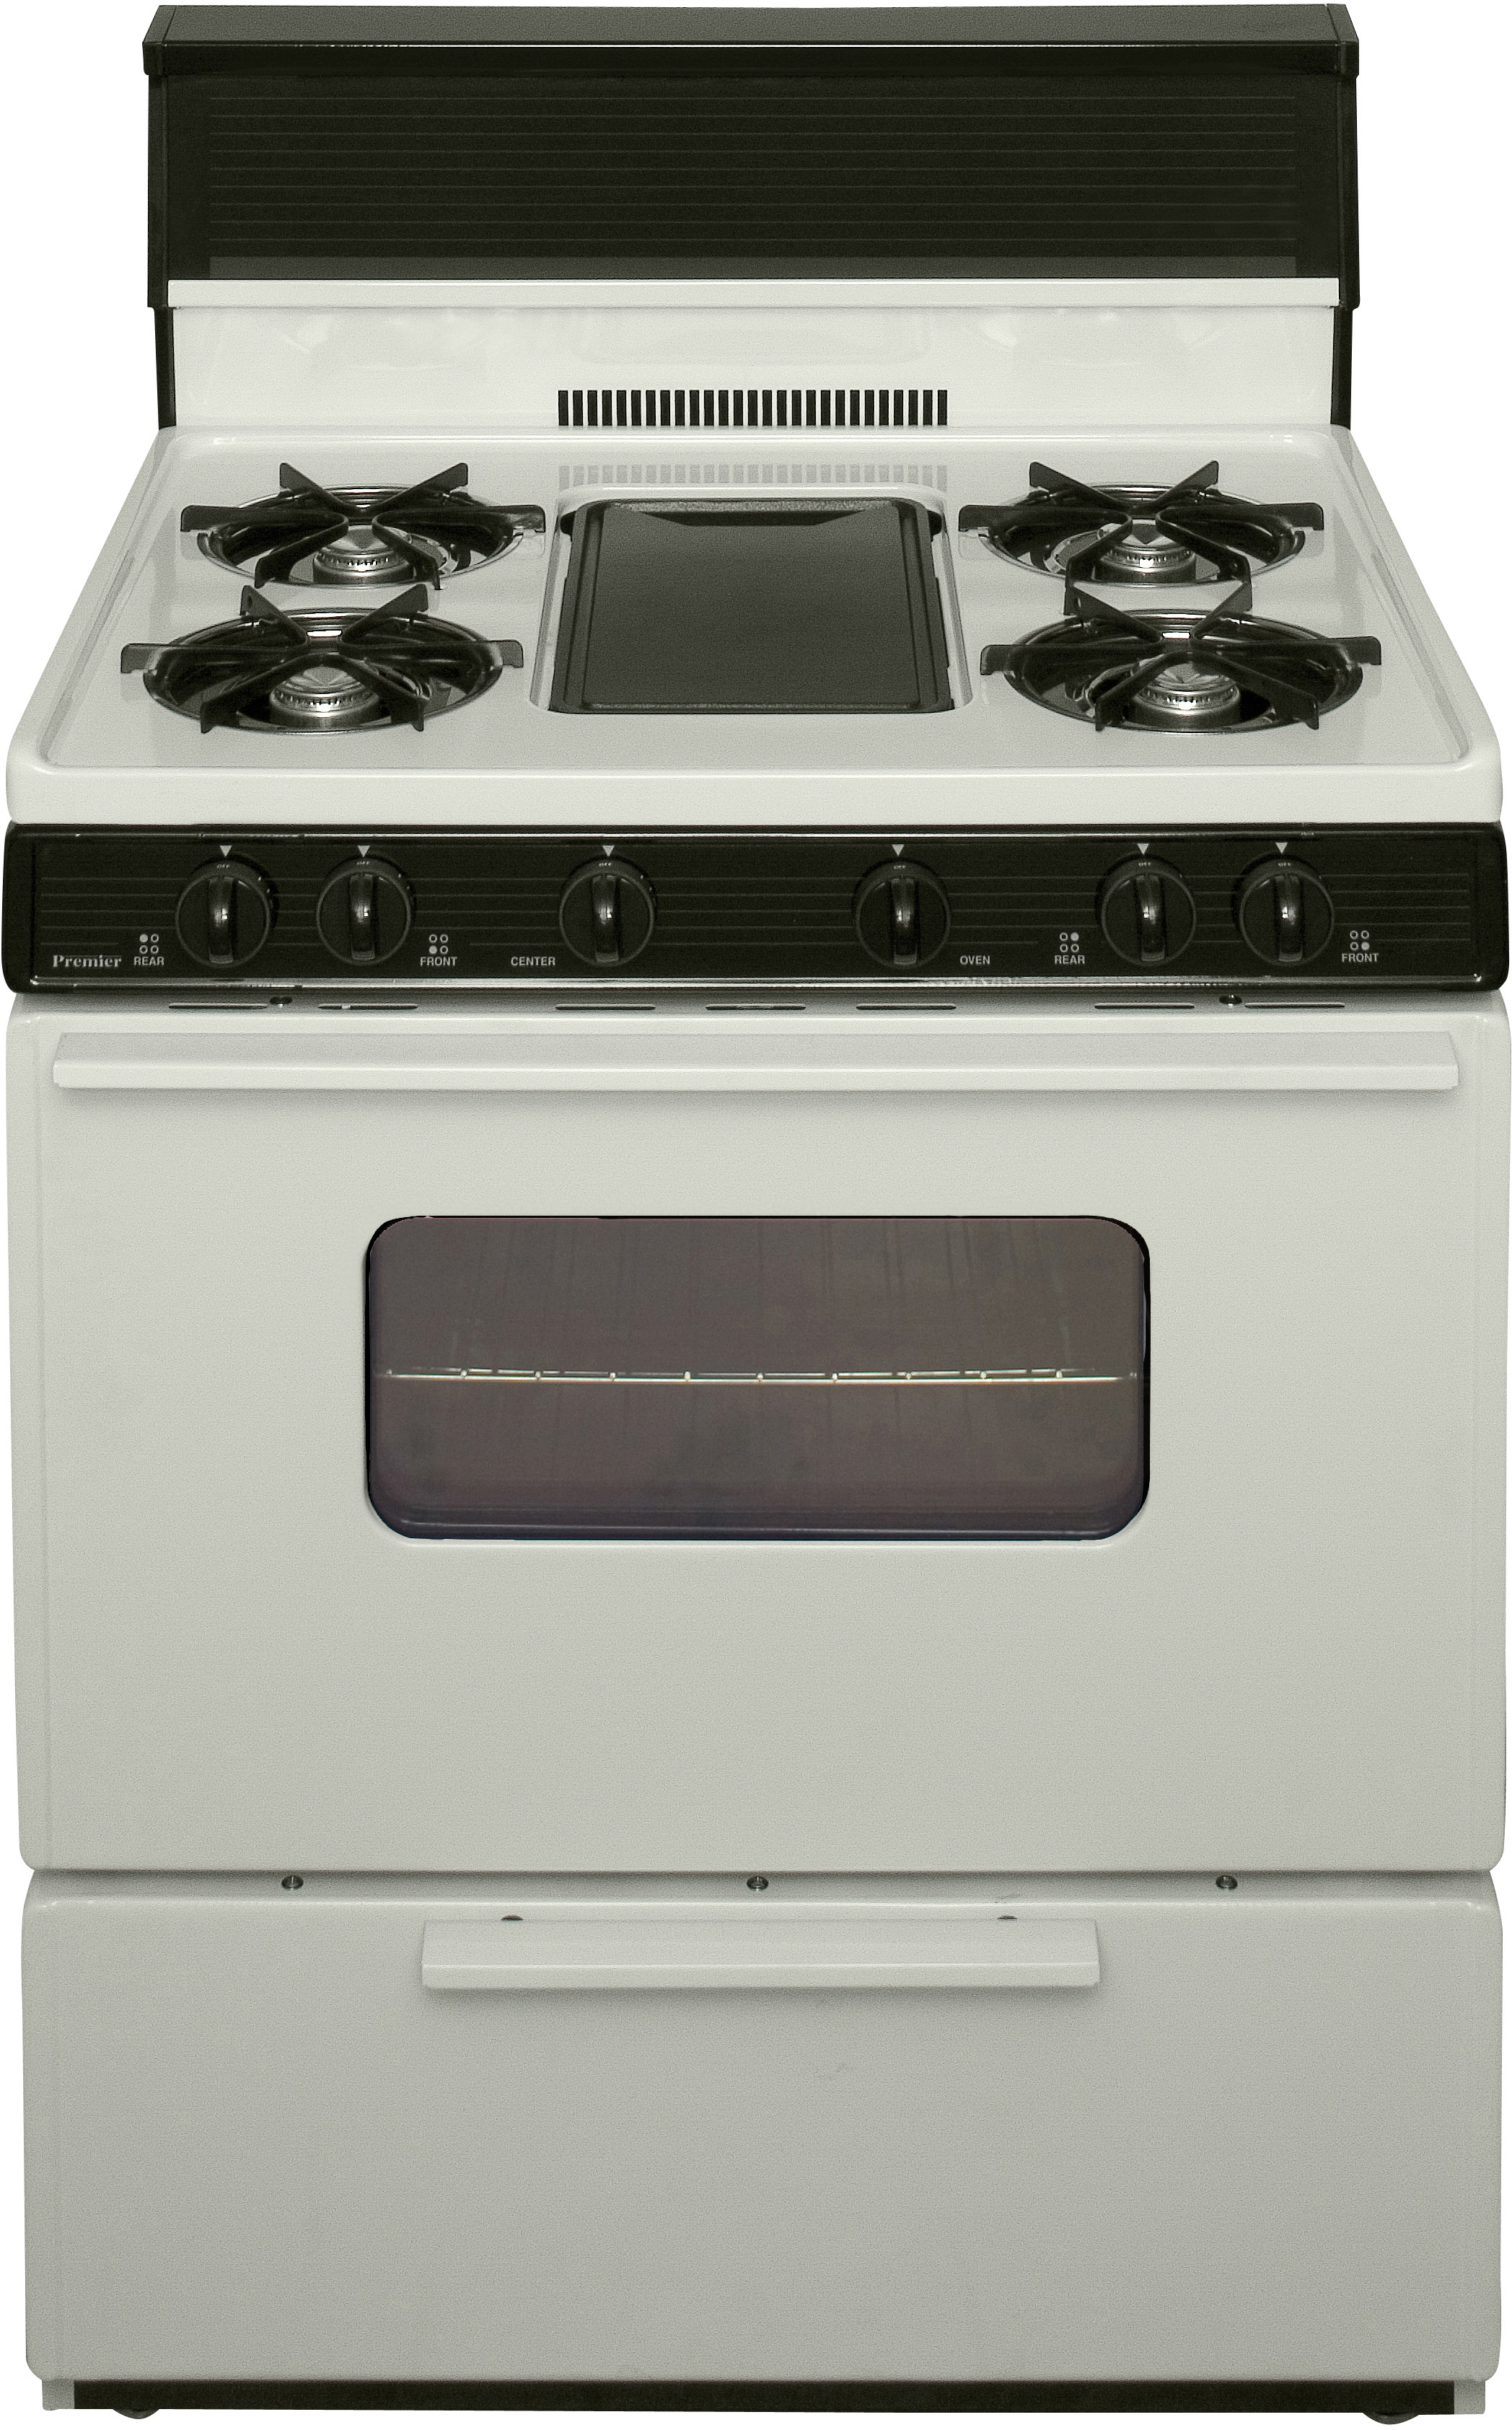 Premier Bfk5s9tp 30 Inch Freestanding Gas Range With 5 Open Burners